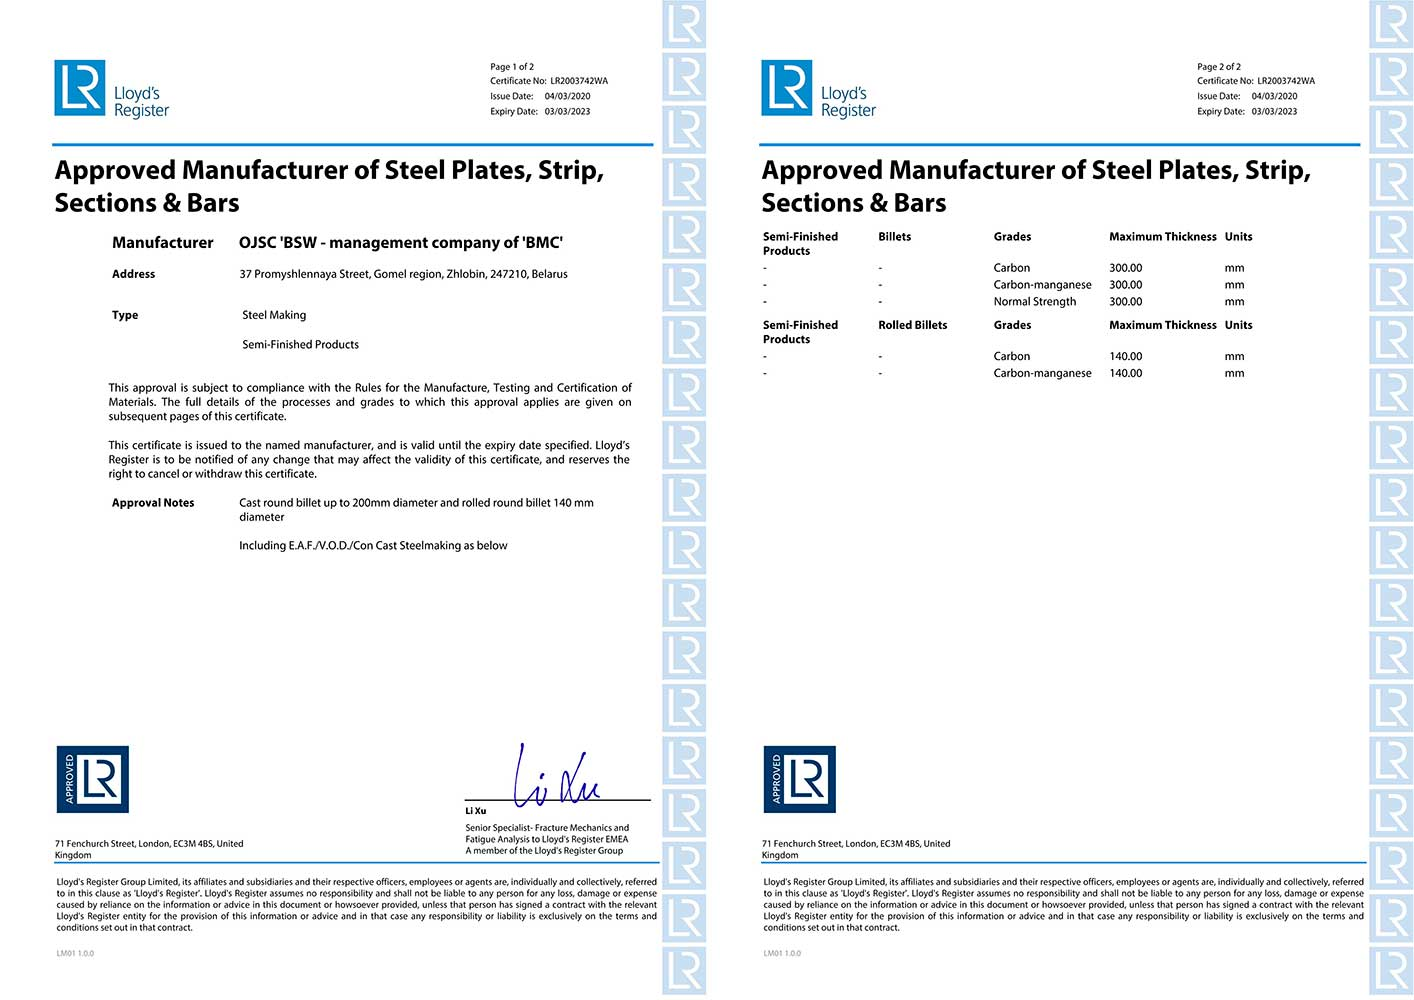 Certificate  № MD00/4297/0001/1 for production of  steel-making and semi-finished products (maximum 200 mm diameter , 140mm diameter) in accordance with Lloyd's Register requirements